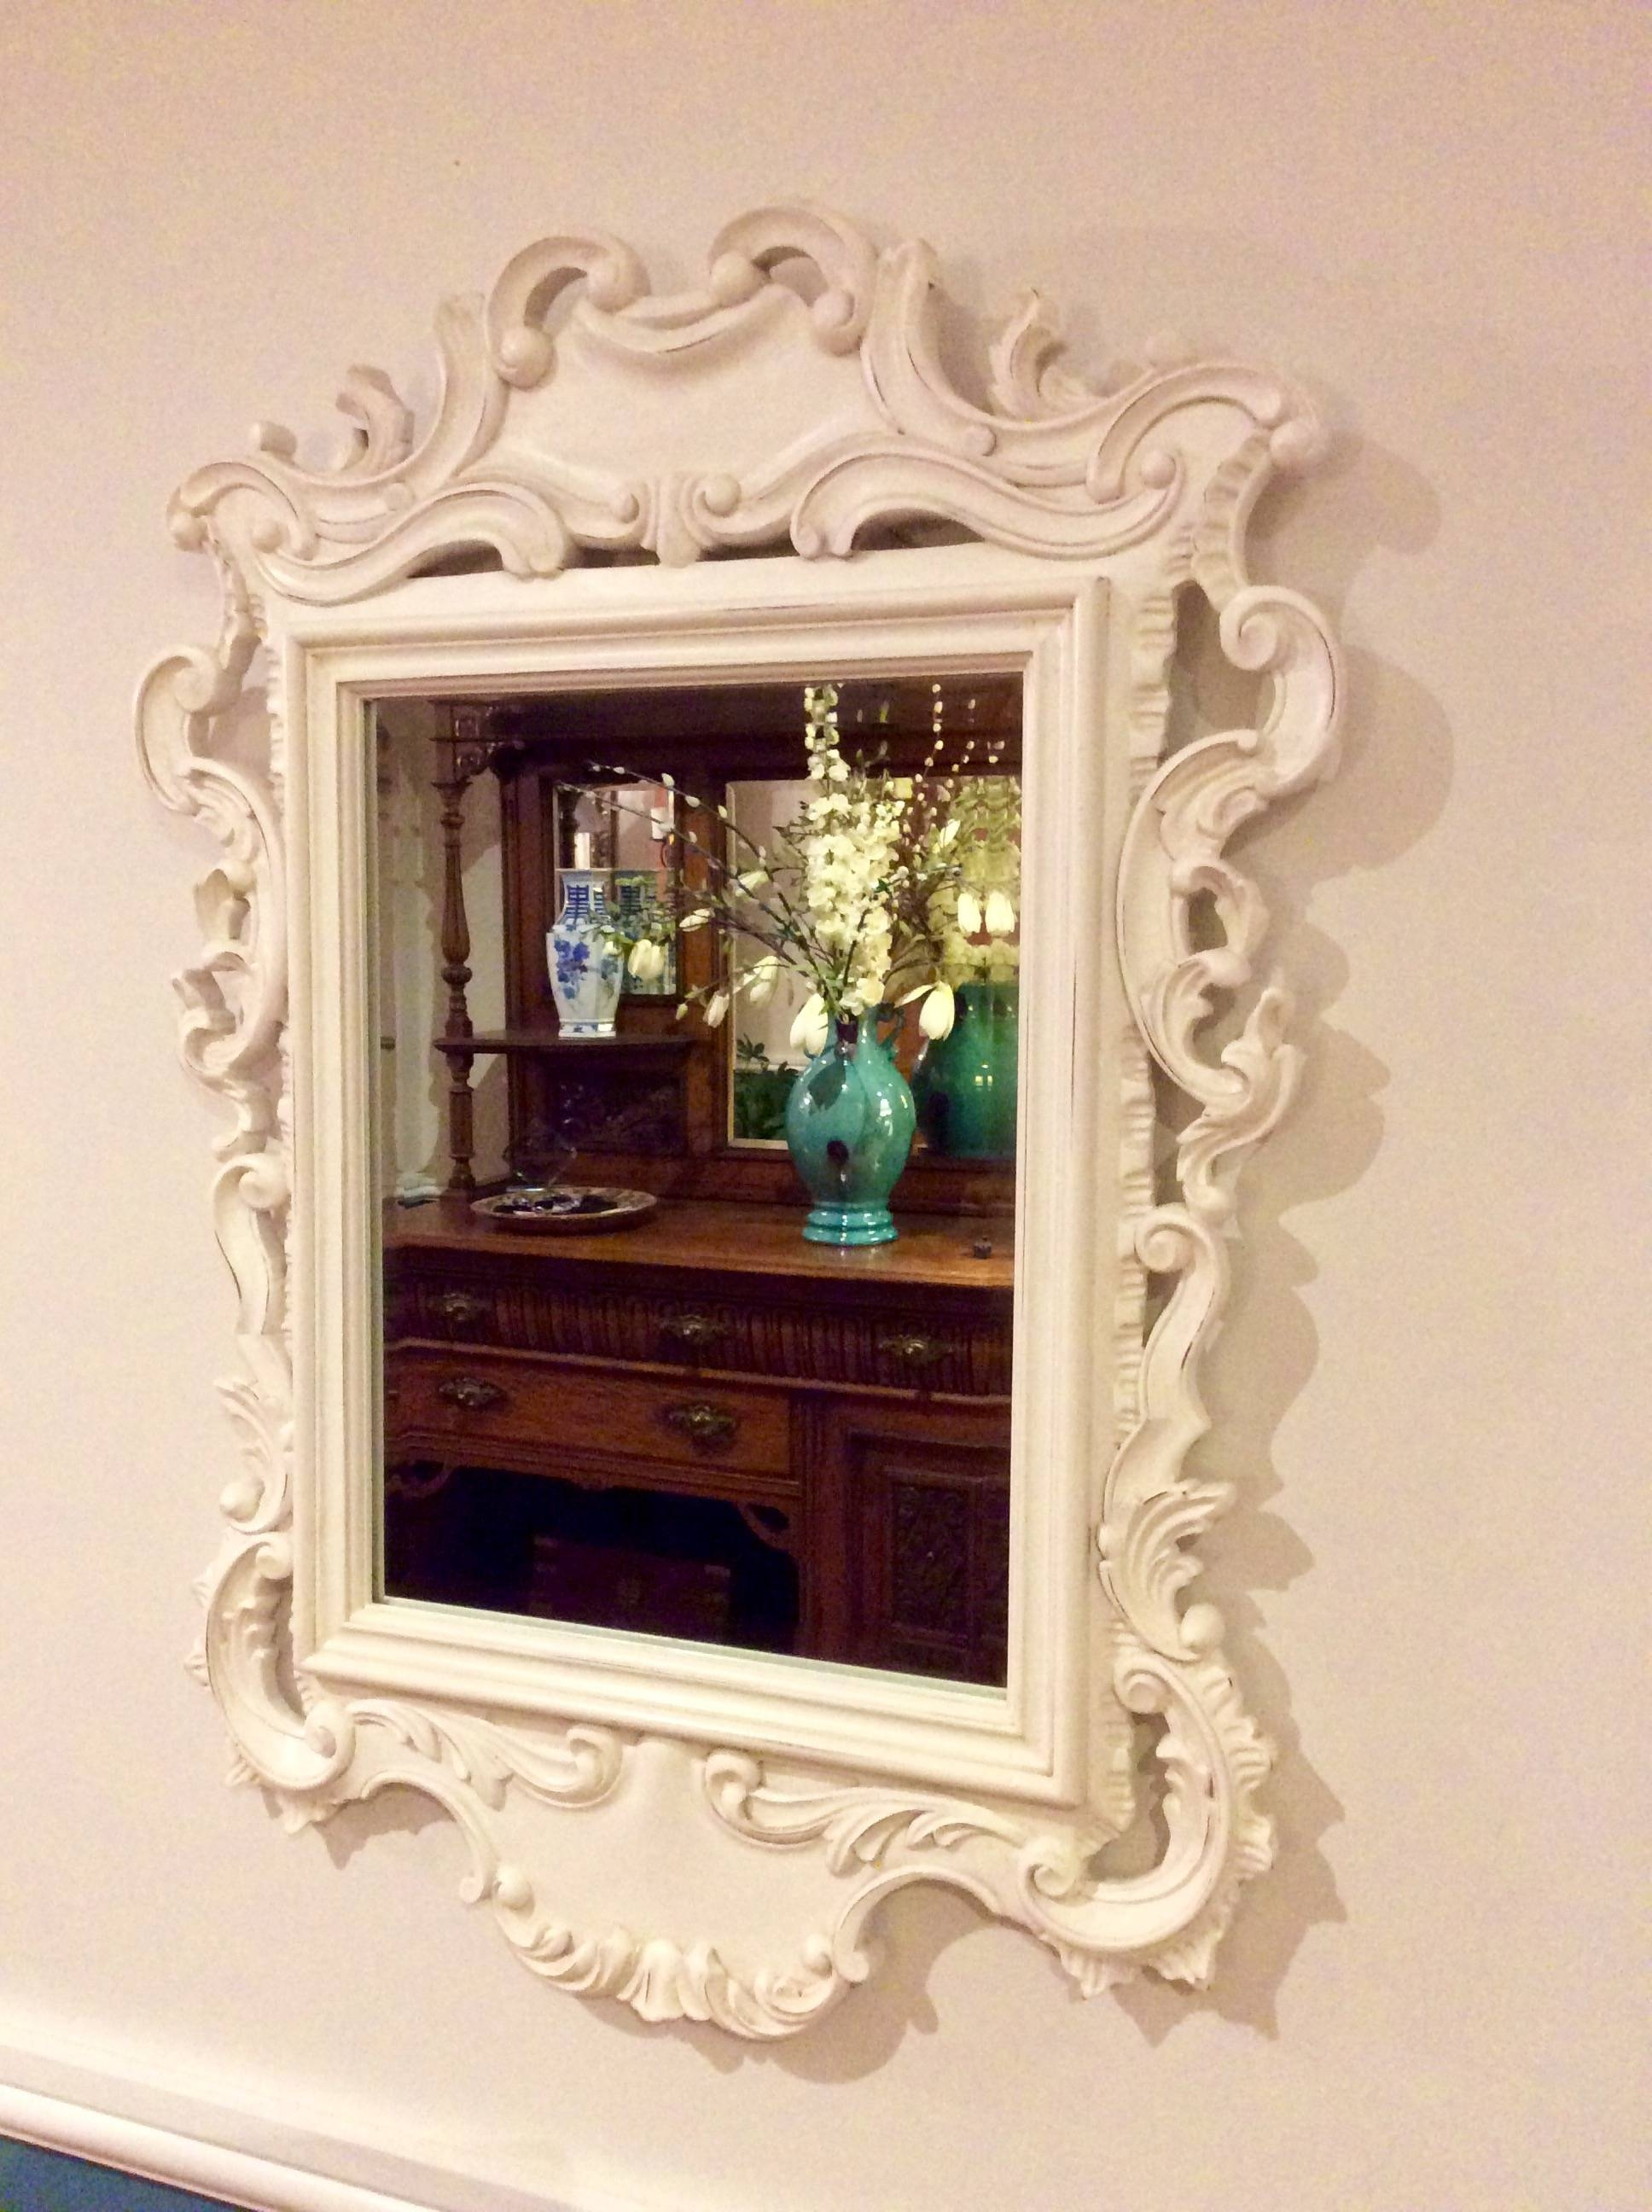 White Rococo Mirror – Sue's Vintage Finds intended for Large White Rococo Mirrors (Image 14 of 15)